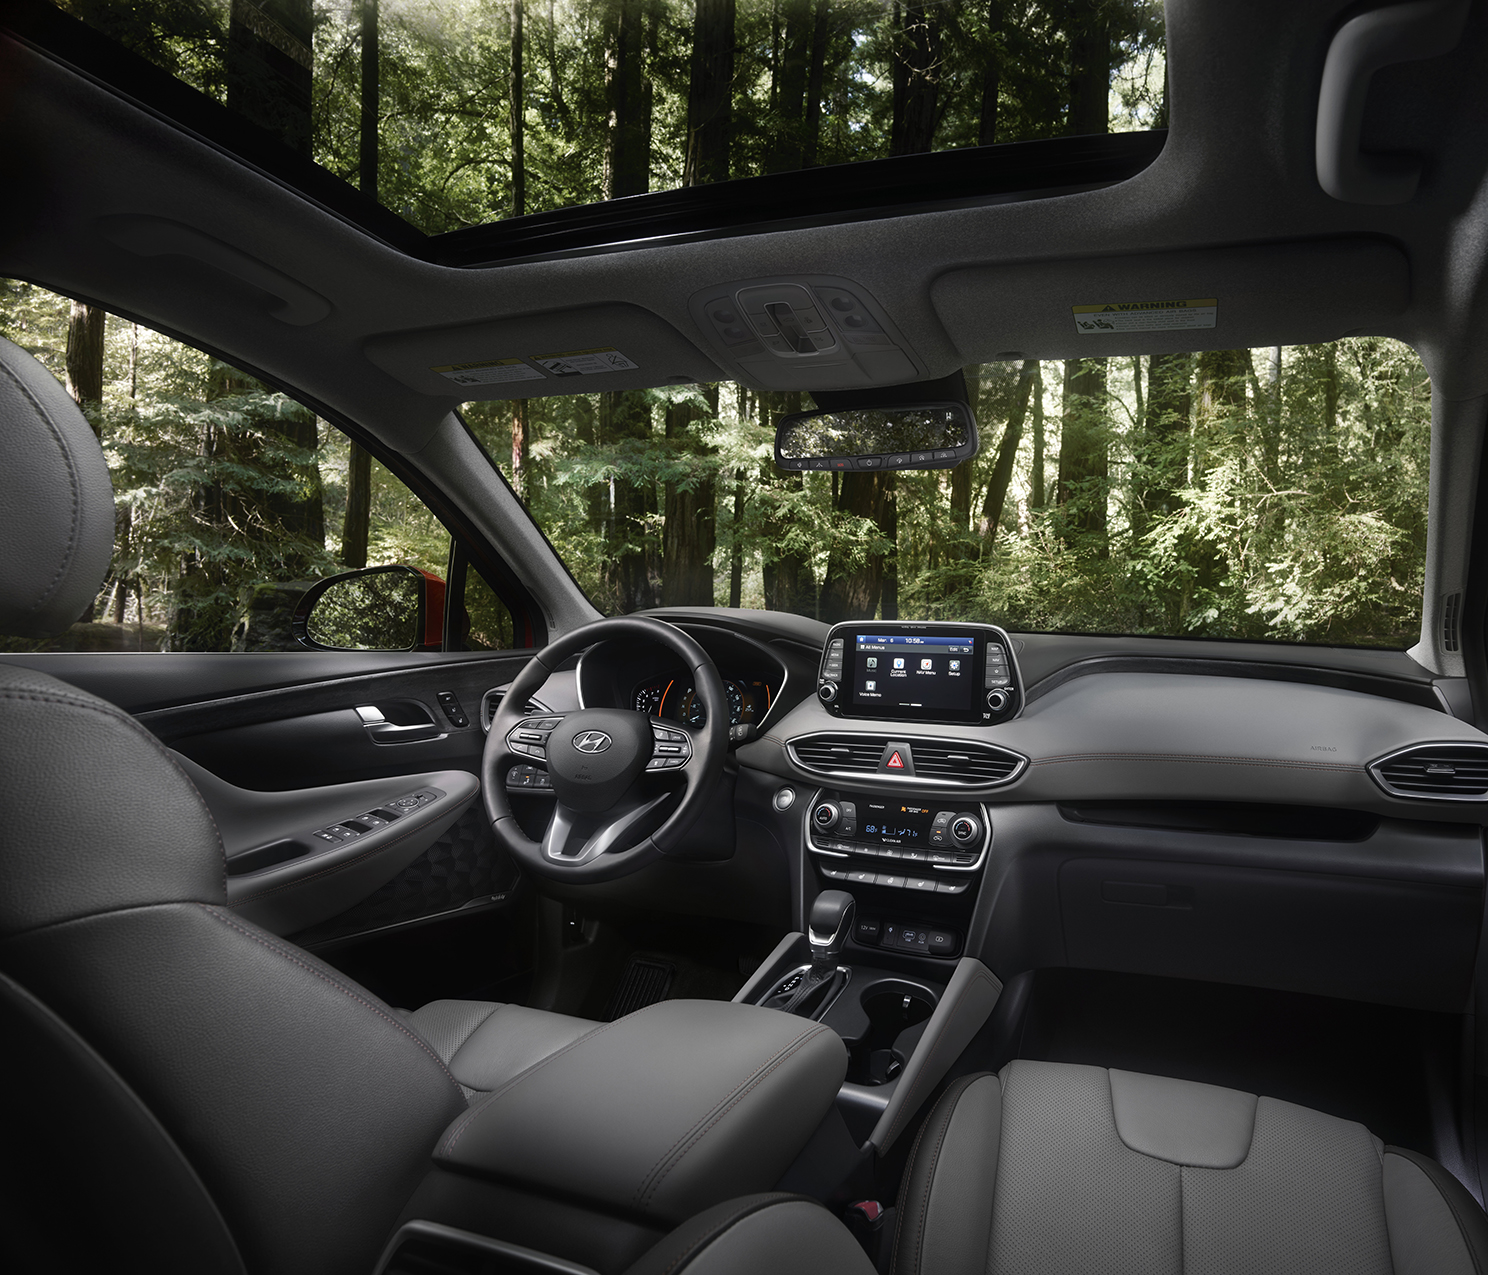 Interior cabin of the 2019 Santa Fe